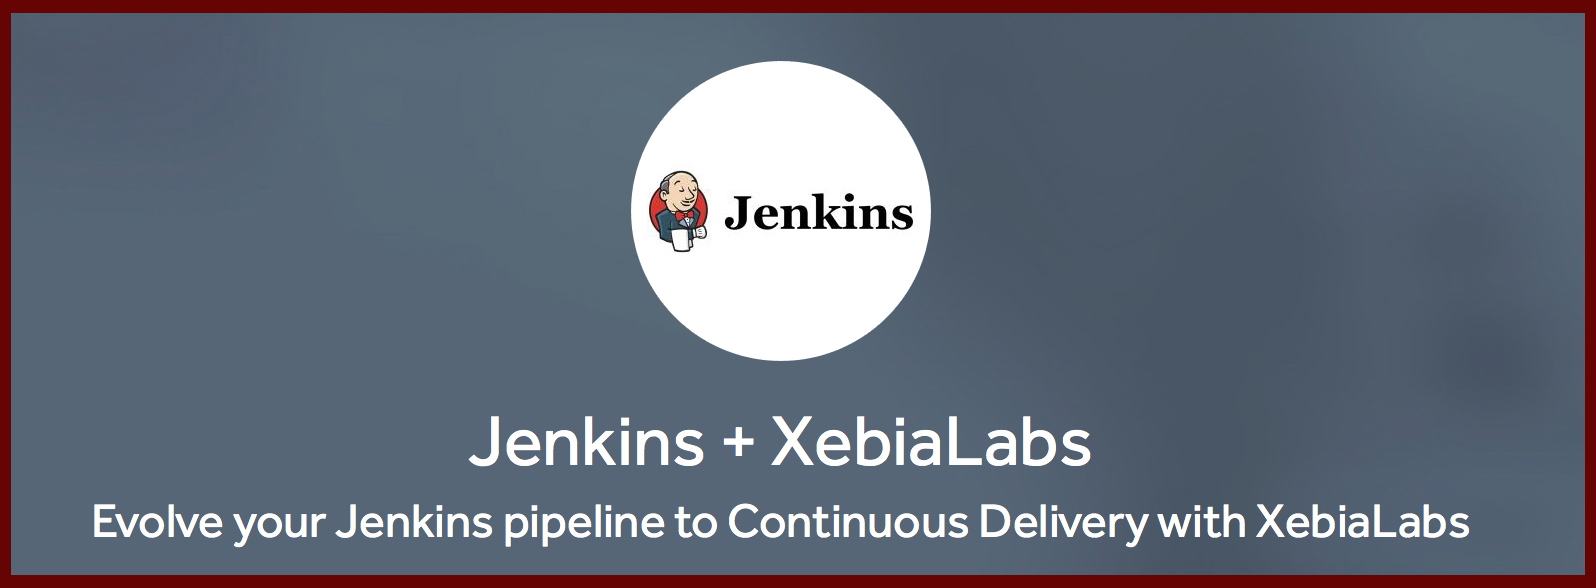 Learn more about XL Release and with XL Deploy with Jenkins